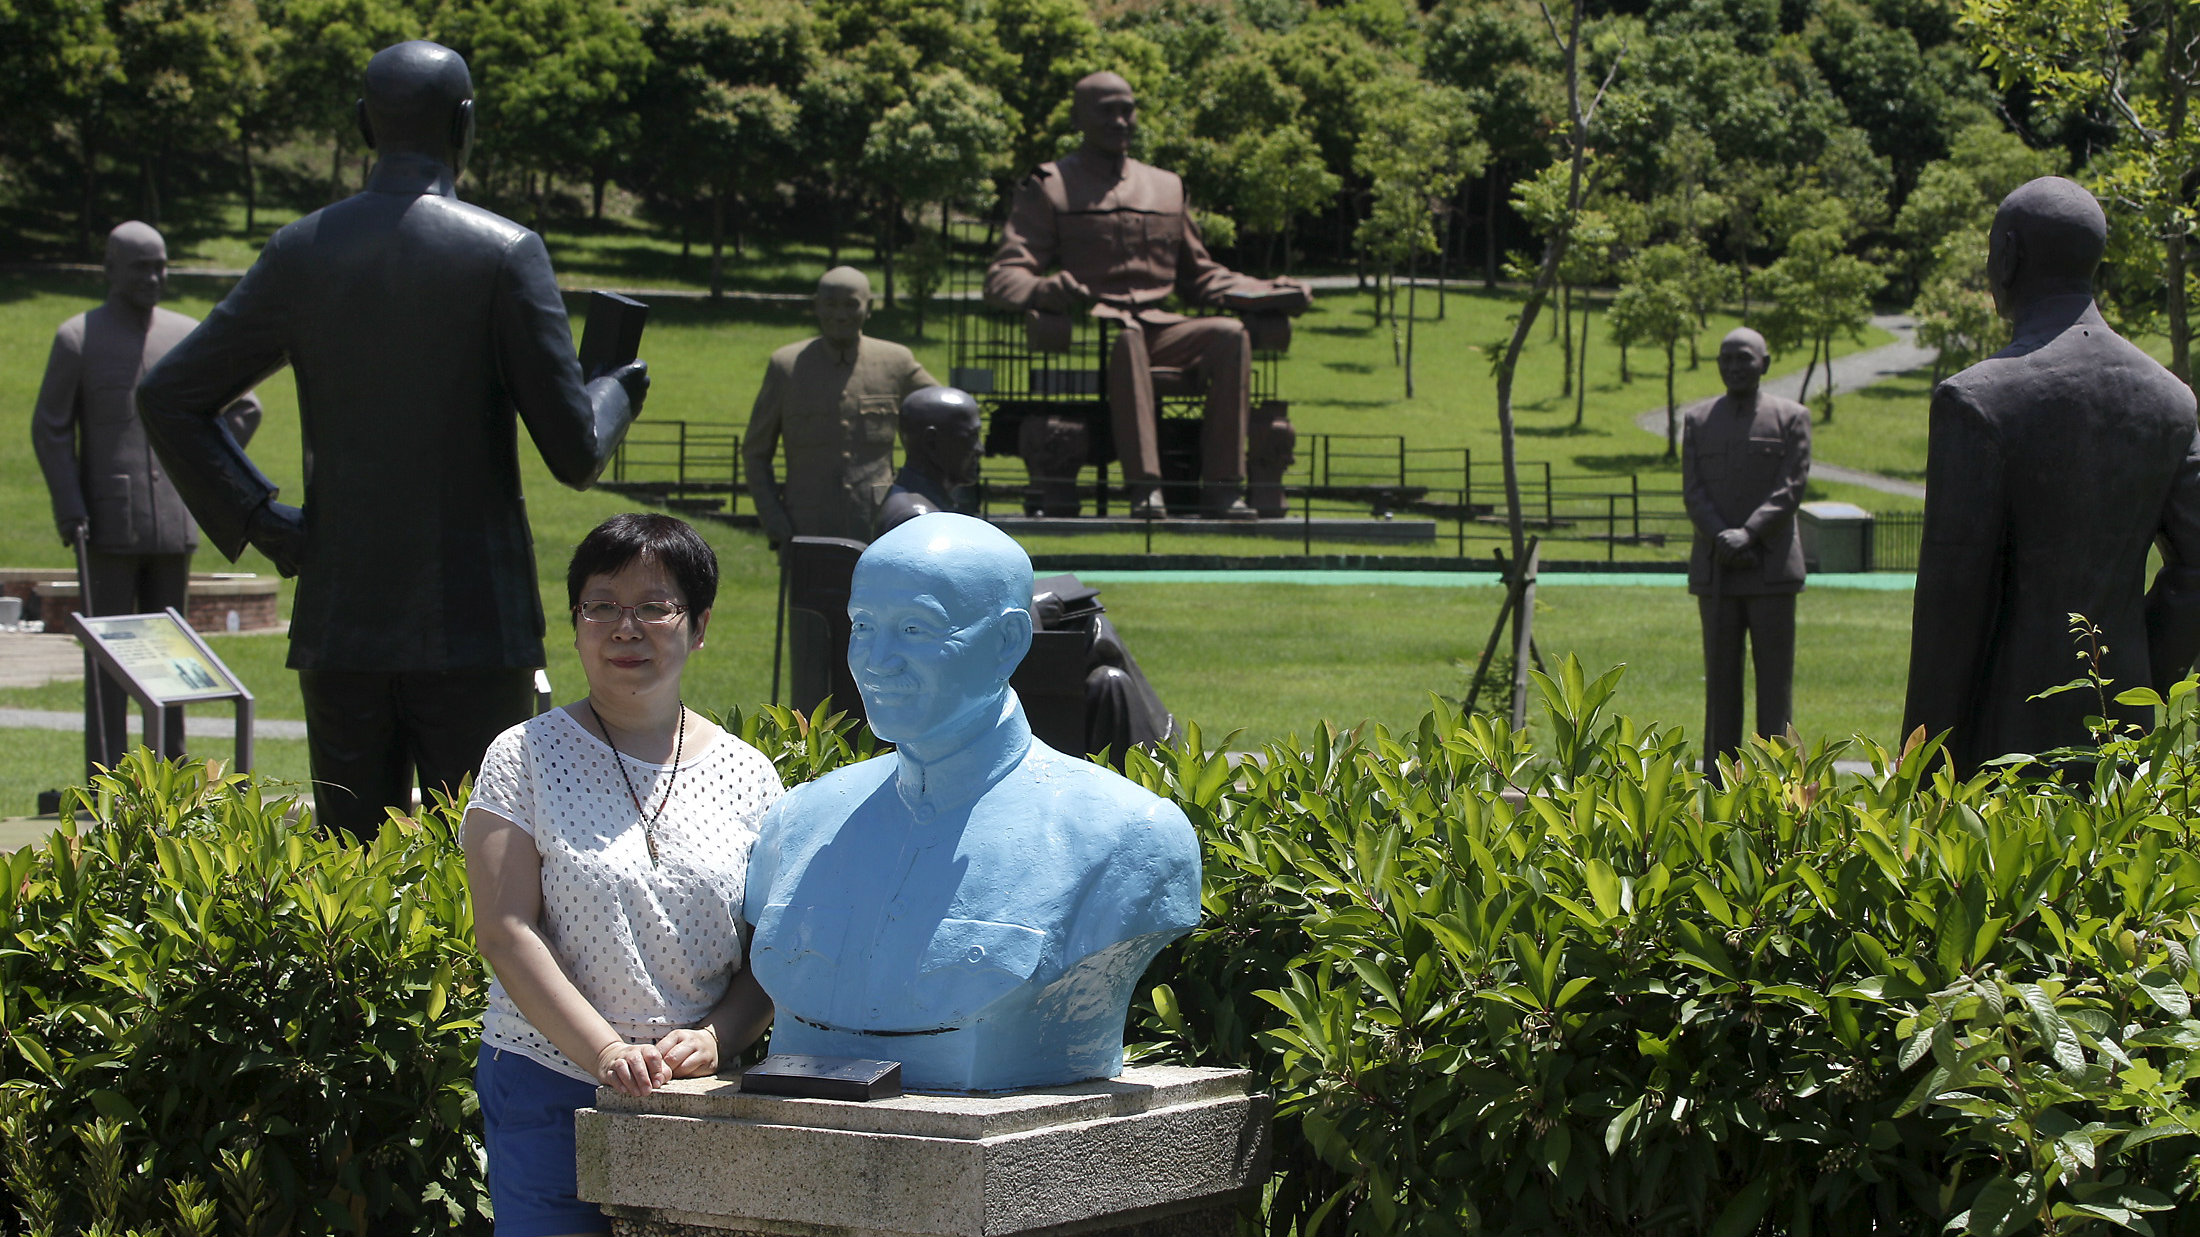 A woman poses for photographs next to a bust of the late president and Nationalist leader Chiang Kai-shek in Taoyuan, northern Taiwan, July 5, 2015. Dumped outside Chiang Kai-shek's mausoleum in Taiwan are nearly 200 unwanted statues of the Nationalist Party hero, a suggestion of the punishment his party faces in January elections for pushing the self-ruled island too close to political foe China. Cast in bronze and in different shades of red, brown, grey and blue, the generalissimo is saluting, holding a book, leaning on a cane, sitting regally or perched on a plinth - a peaceful if surreal gathering that belies the disarray of the party it represents.